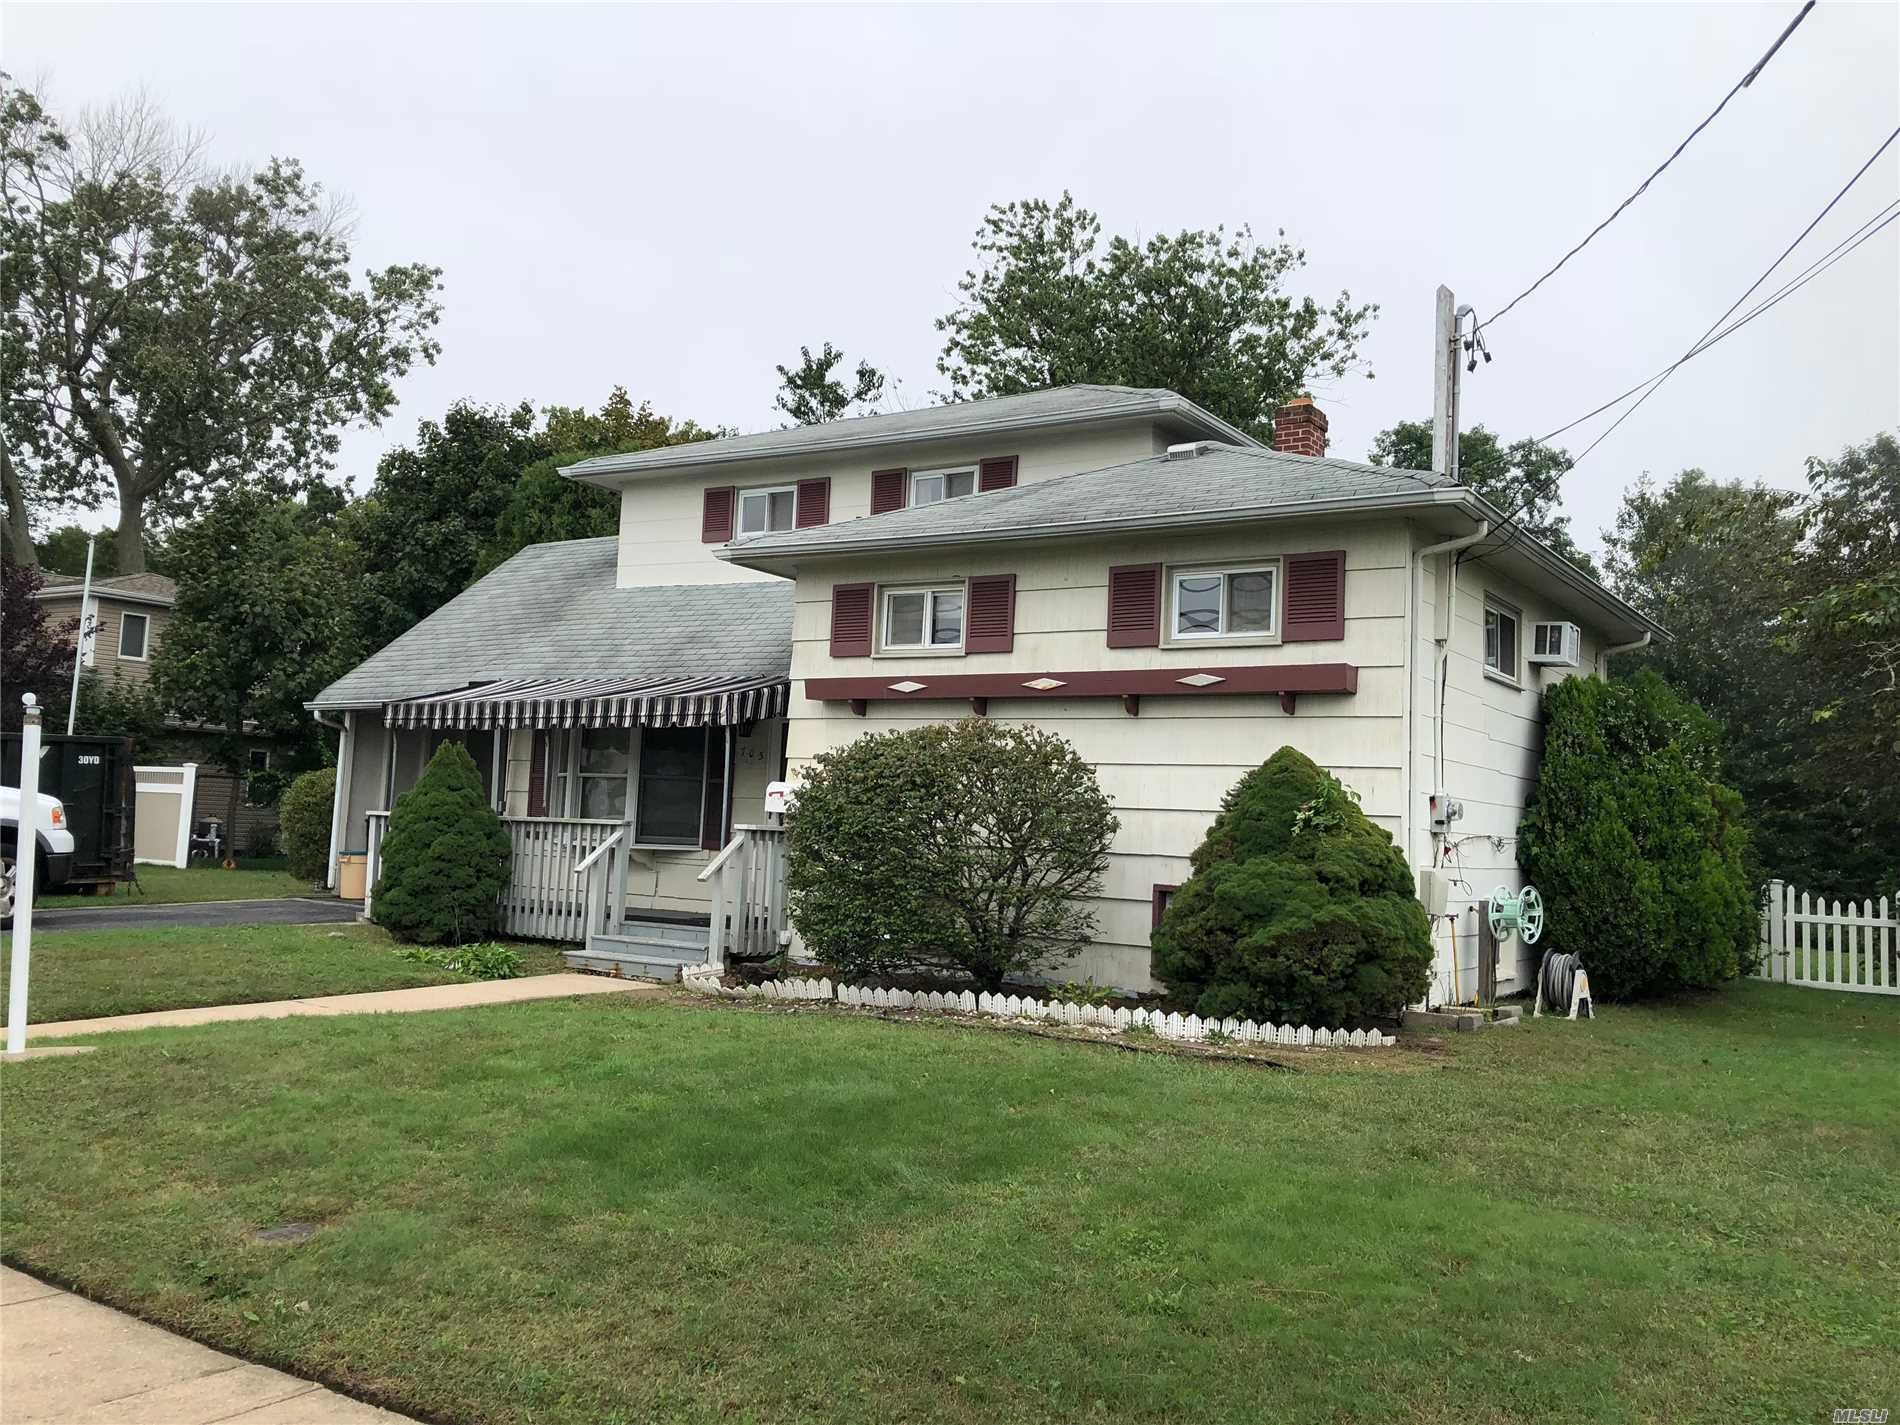 Expanded Split On Rare True 1/2 Acre Property, Close To Good Samaritan Hospital Medical Center And Just Minutes From Fire Island National Sea Shore. Great Opportunity For Energetic Family!